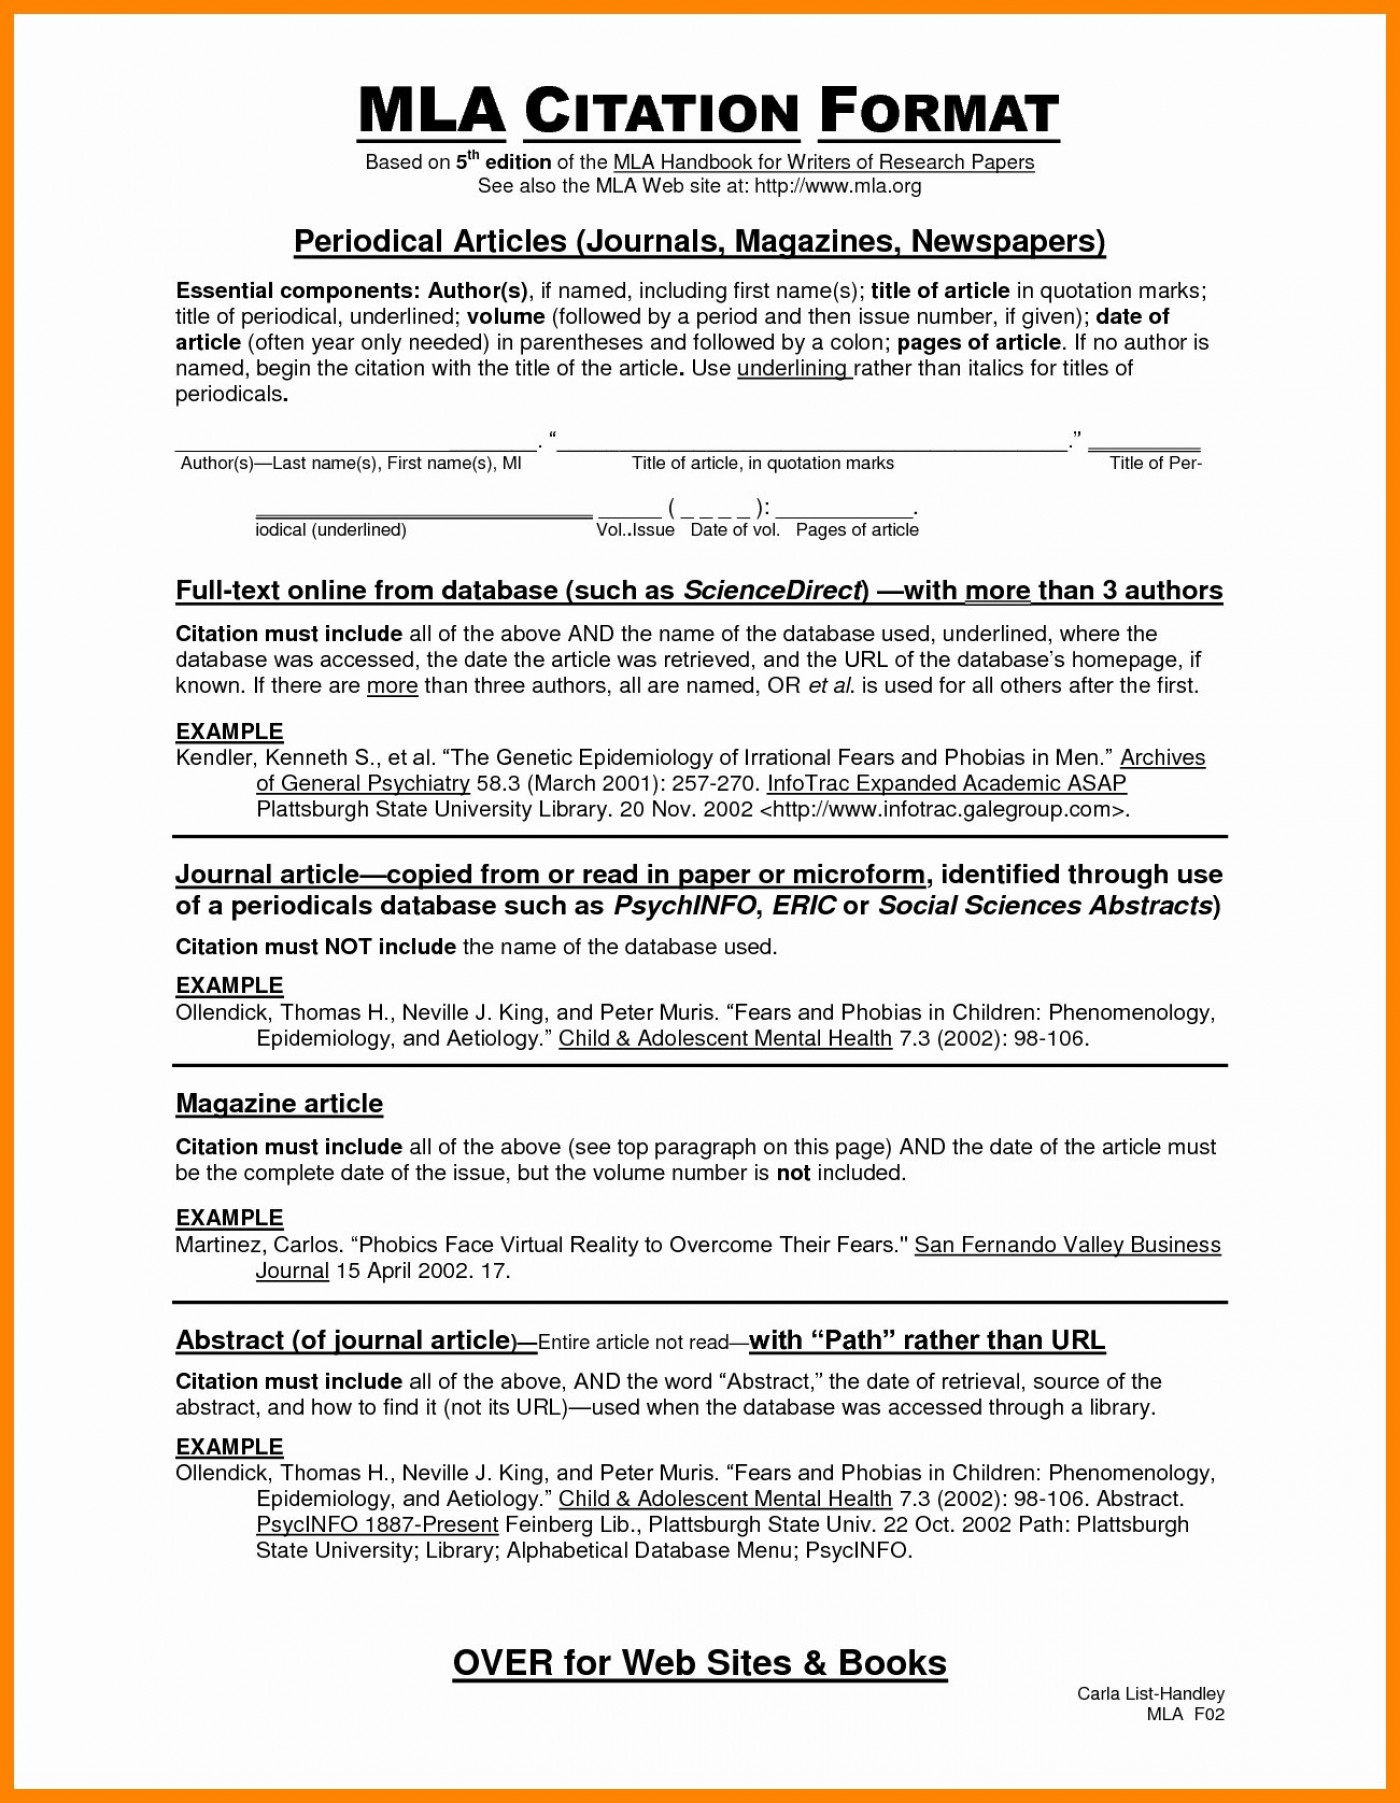 012 Research Paper Works Cited New Mla Title Page Template Awesomematmal Outline Of Top Formal For How To Write A 1400